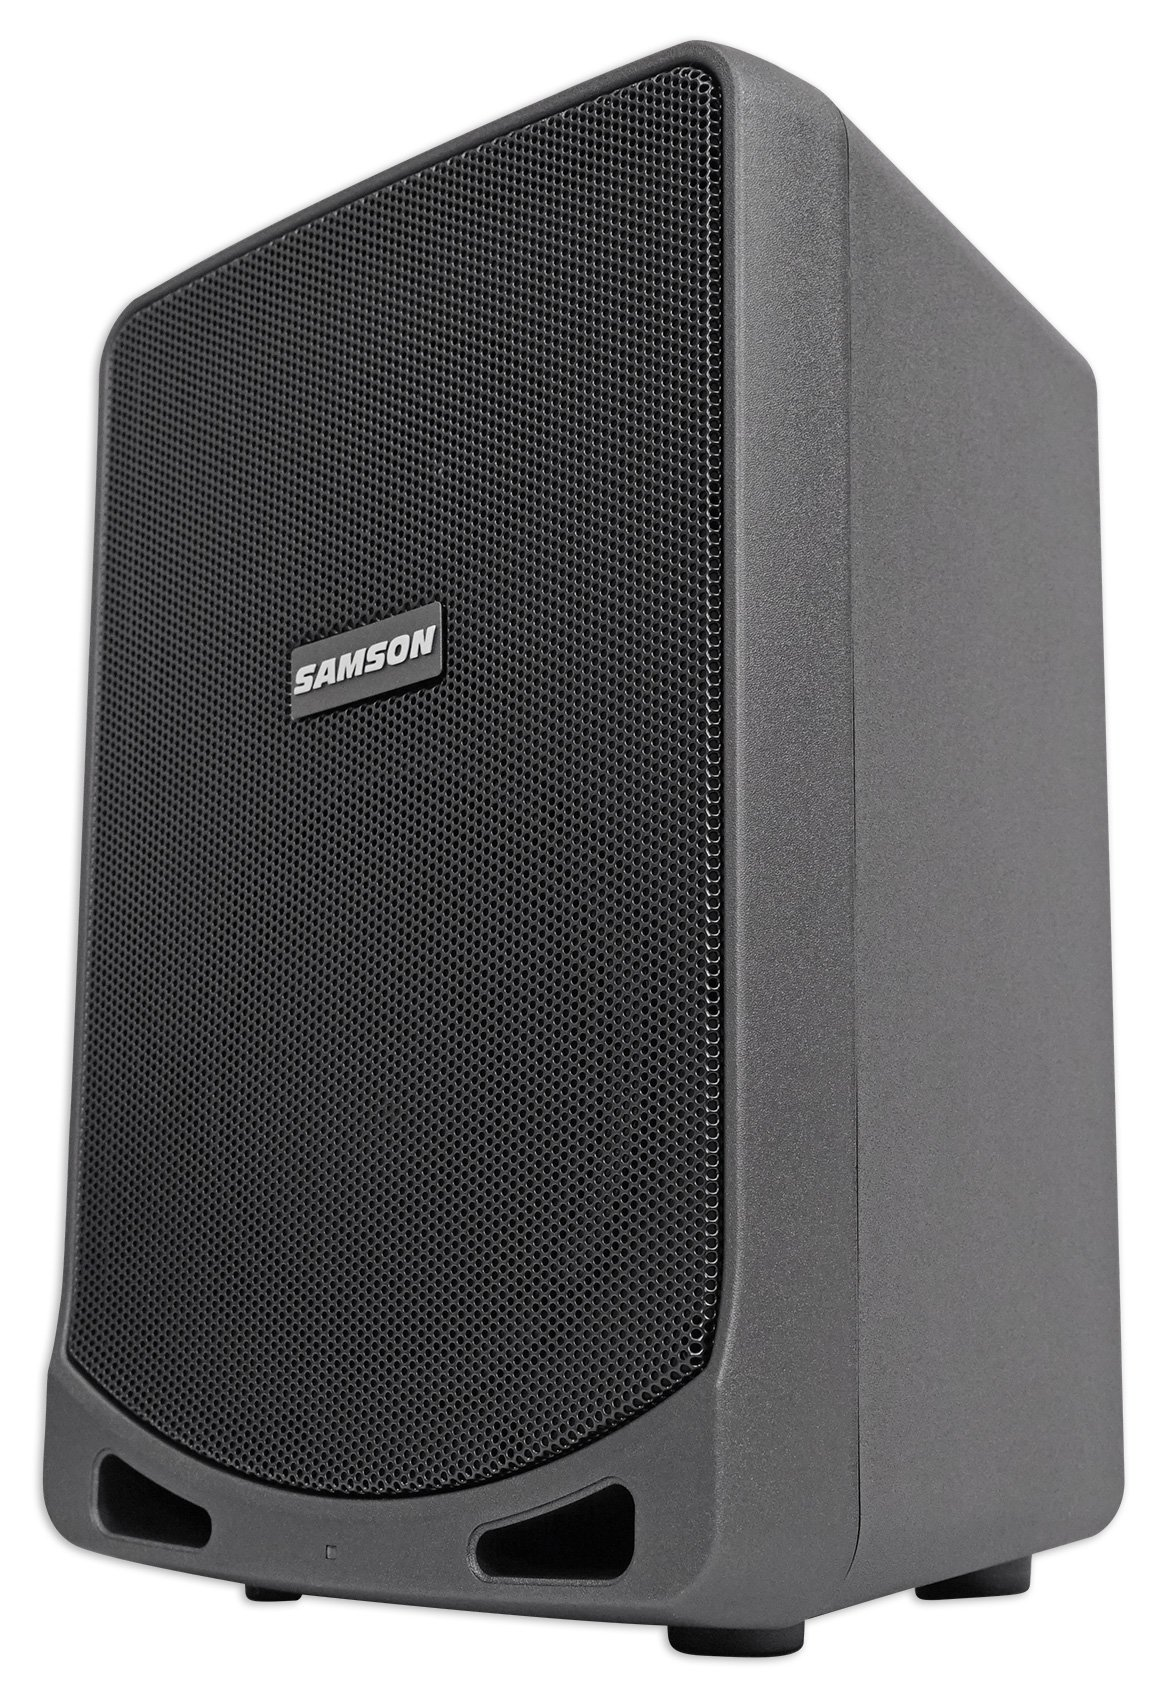 Samson 6'' Portable Rechargeable Speaker+Mic For Workout, Yoga, Spin, Fitness by Samson Technologies (Image #2)